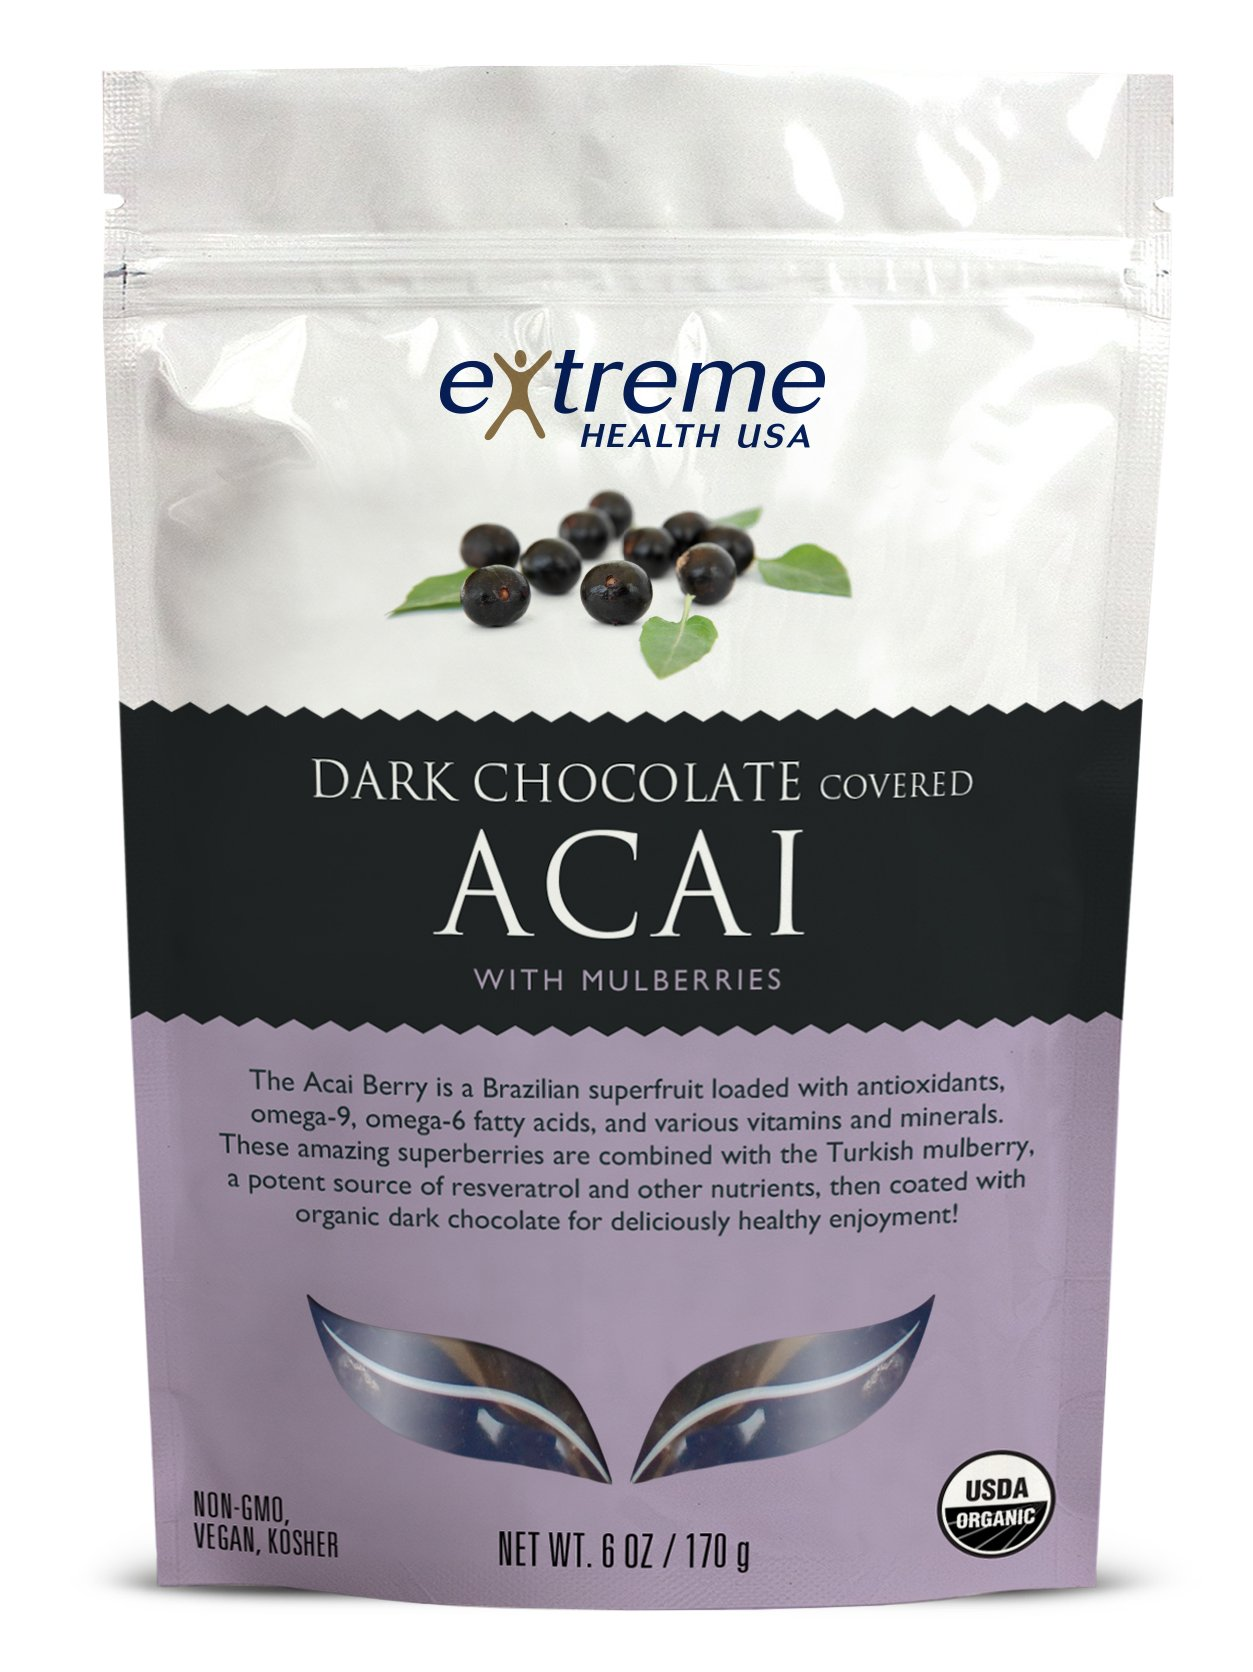 Extreme Health USA Organic Acai with Mulberries Covered with Dark Chocolate, 6-Ounce